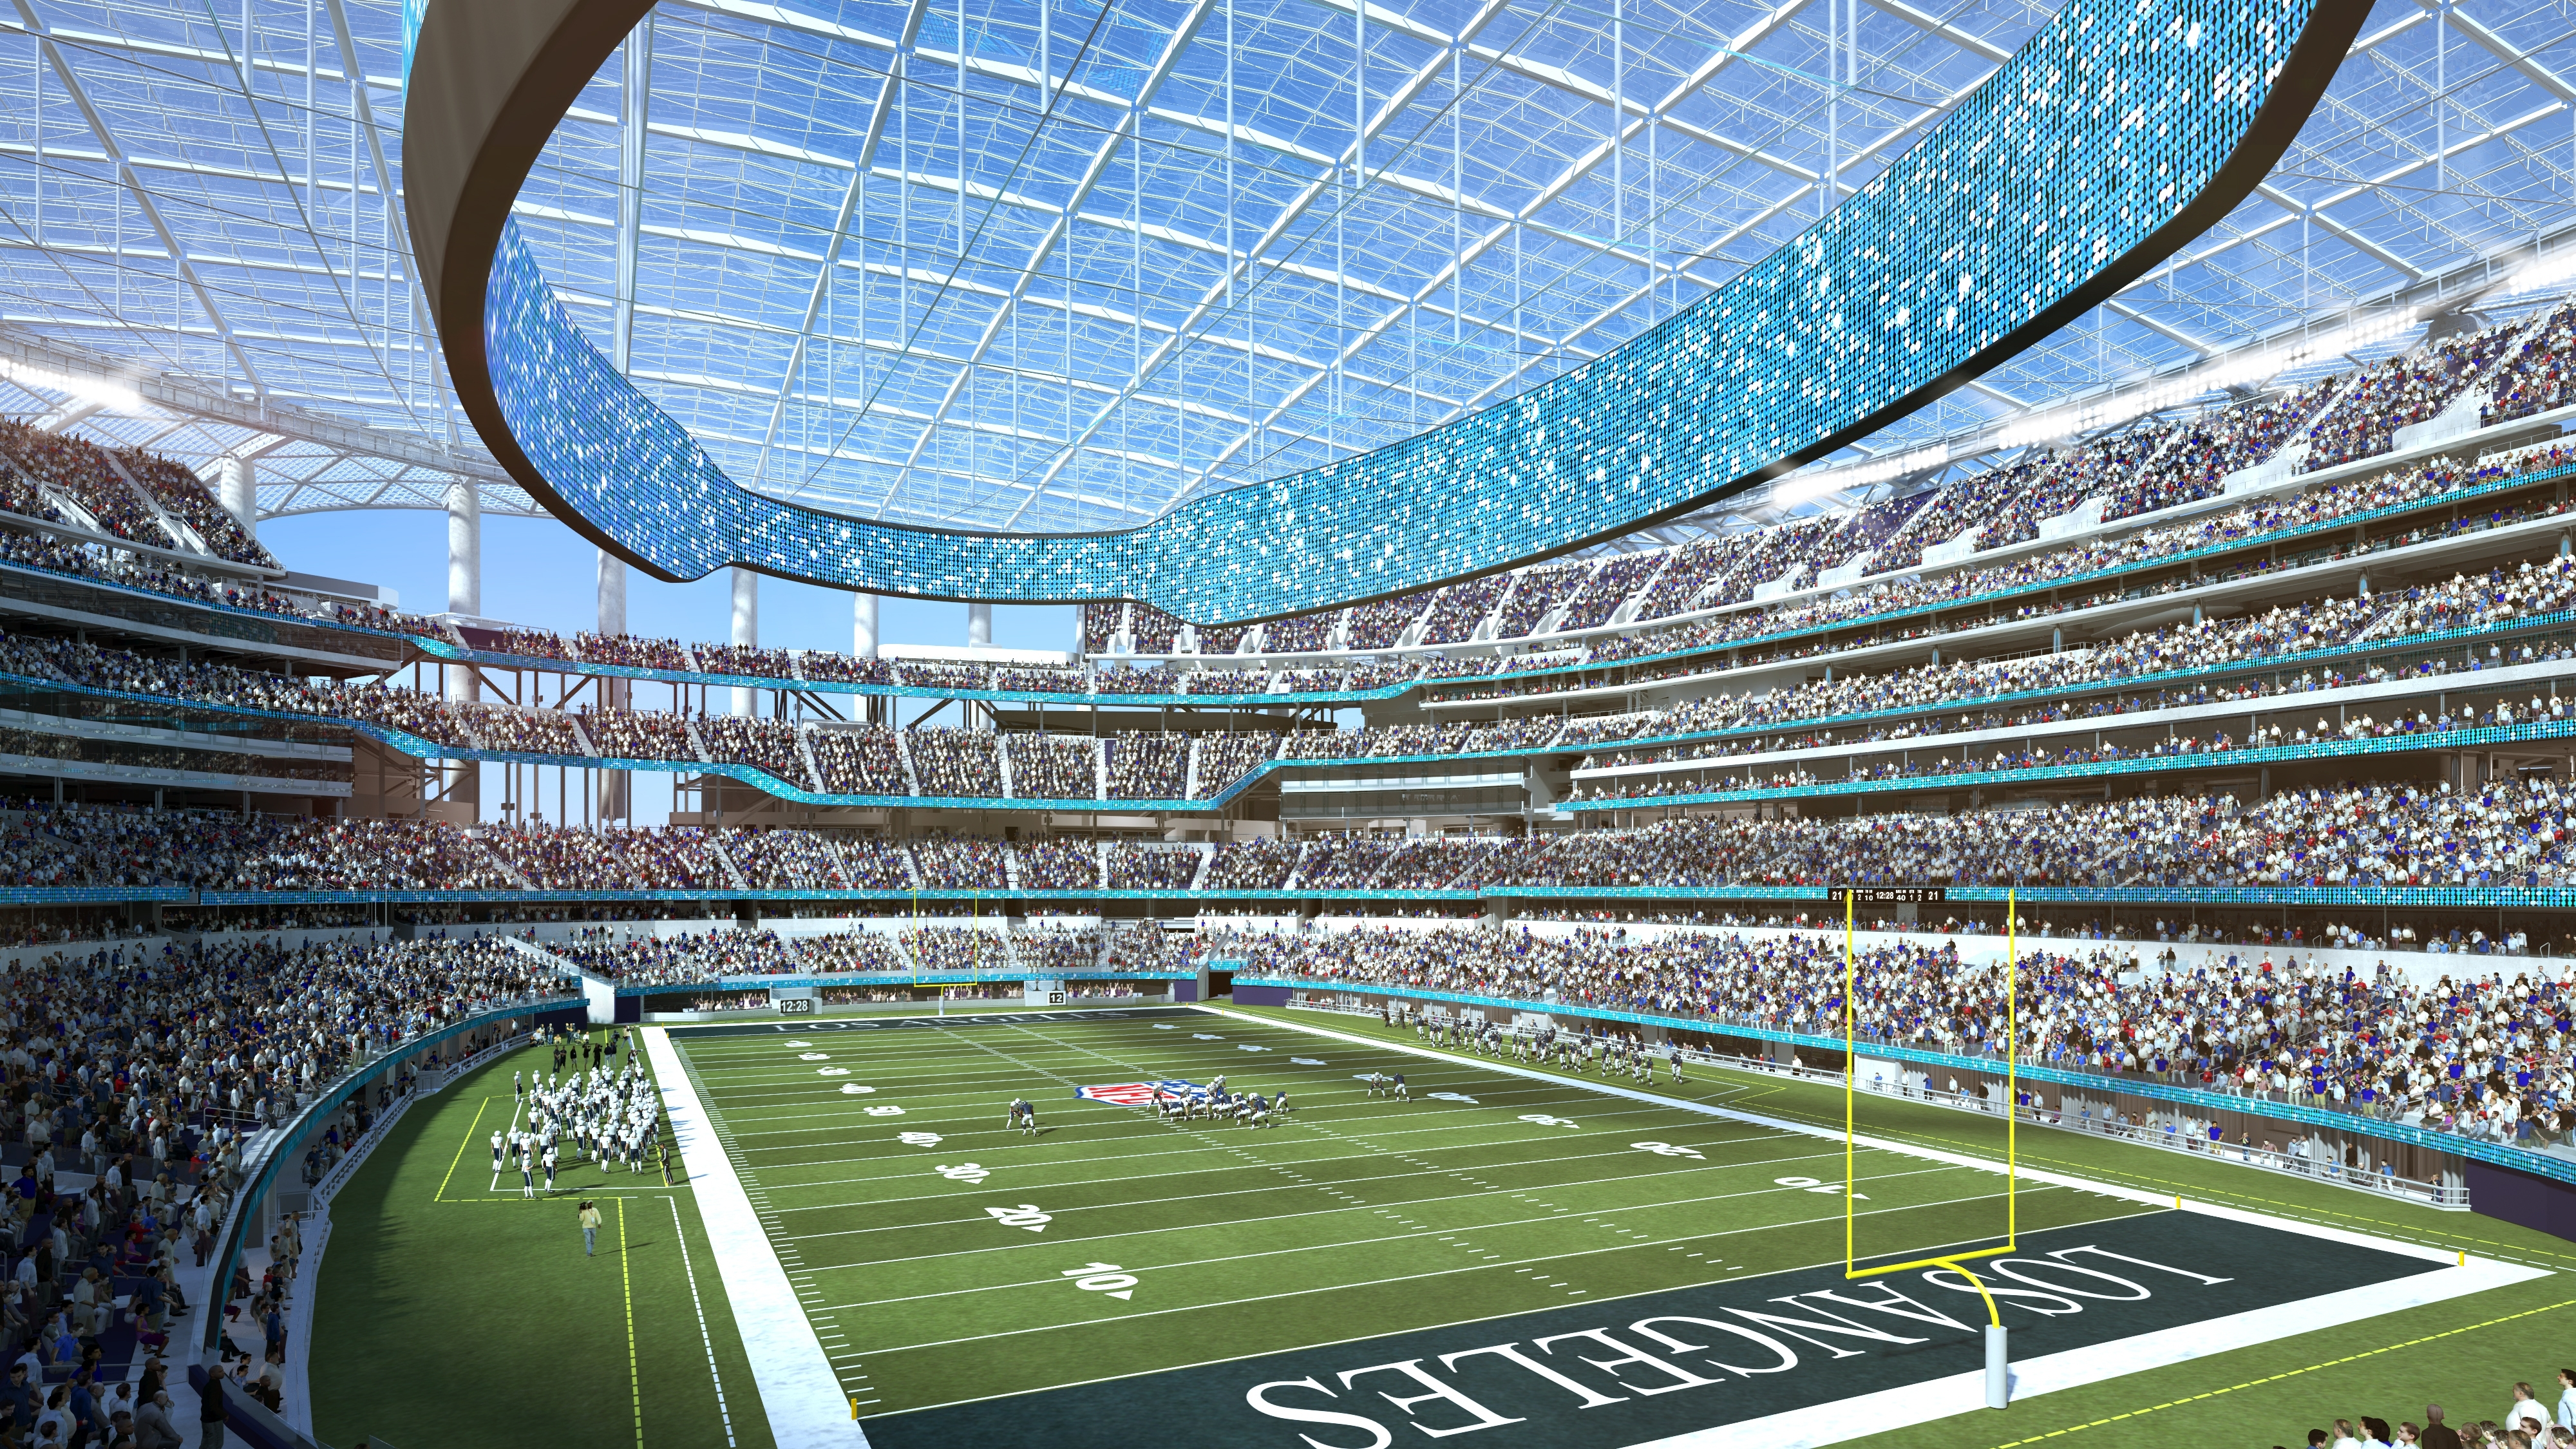 New Home To Rams, Chargers To Be Known As Sofi Stadium in Super Bowl Stadium 2019 Seating Capacity